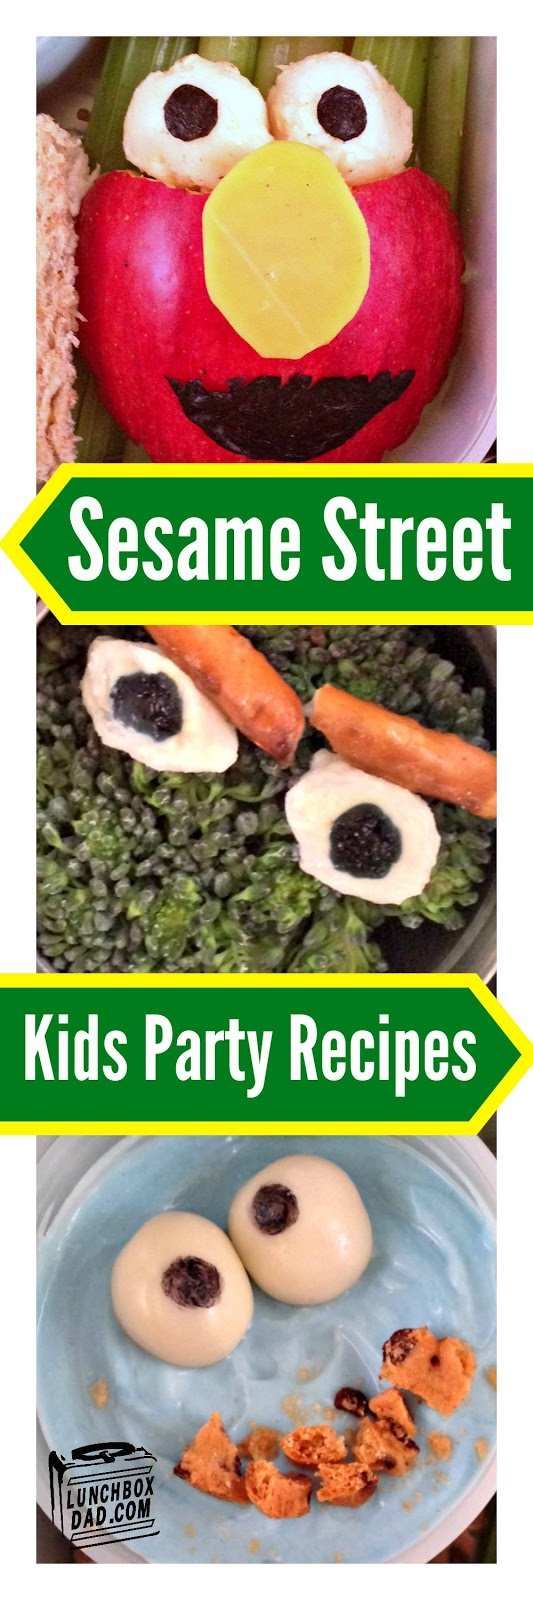 Sesame Street Kids Party Ideas with Elmo, Oscar The Grouch, and Cookie Monster